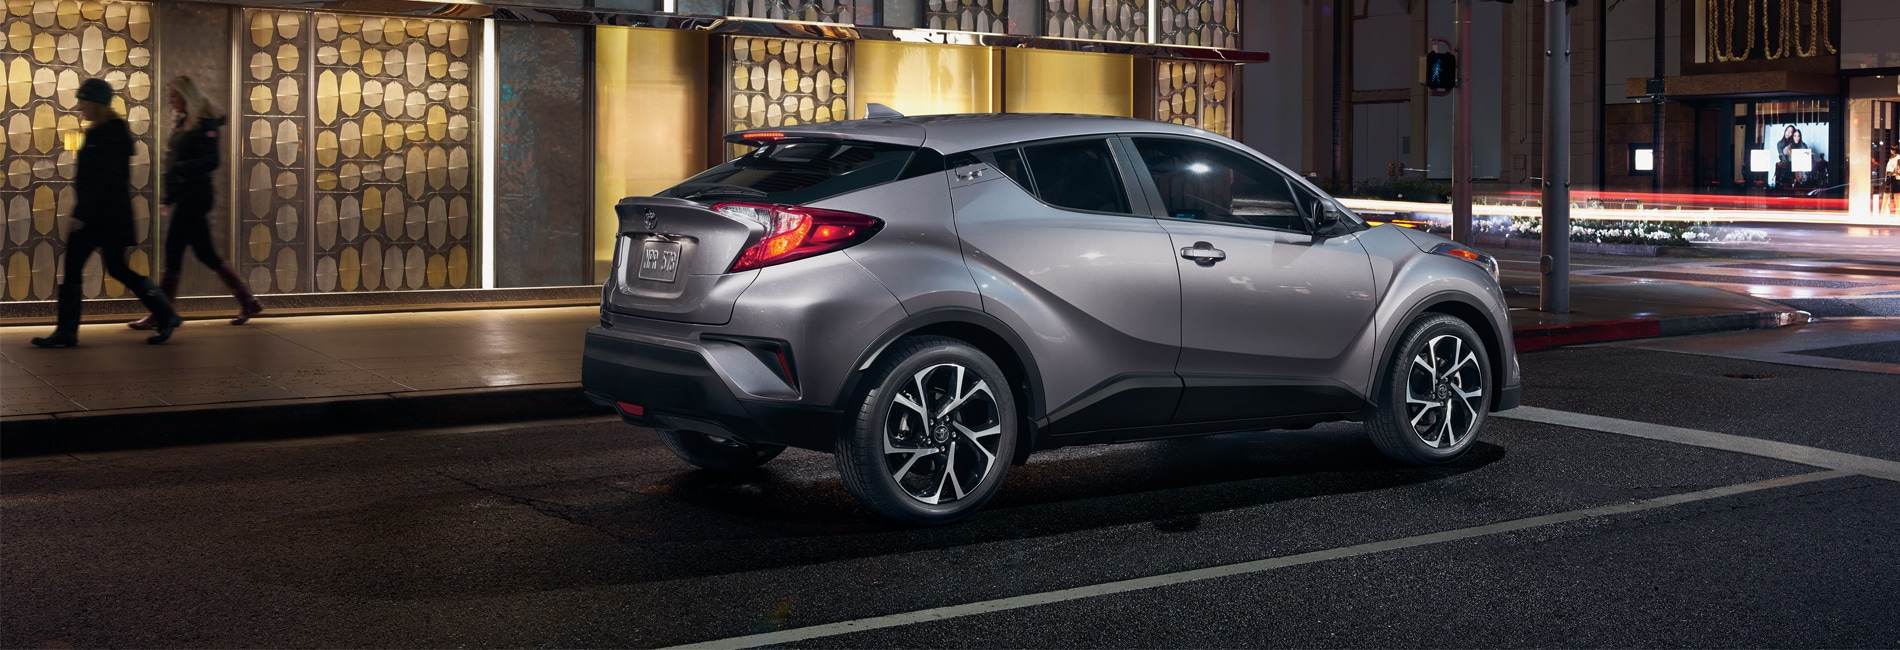 Toyota C-HR Exterior Vehicle Features